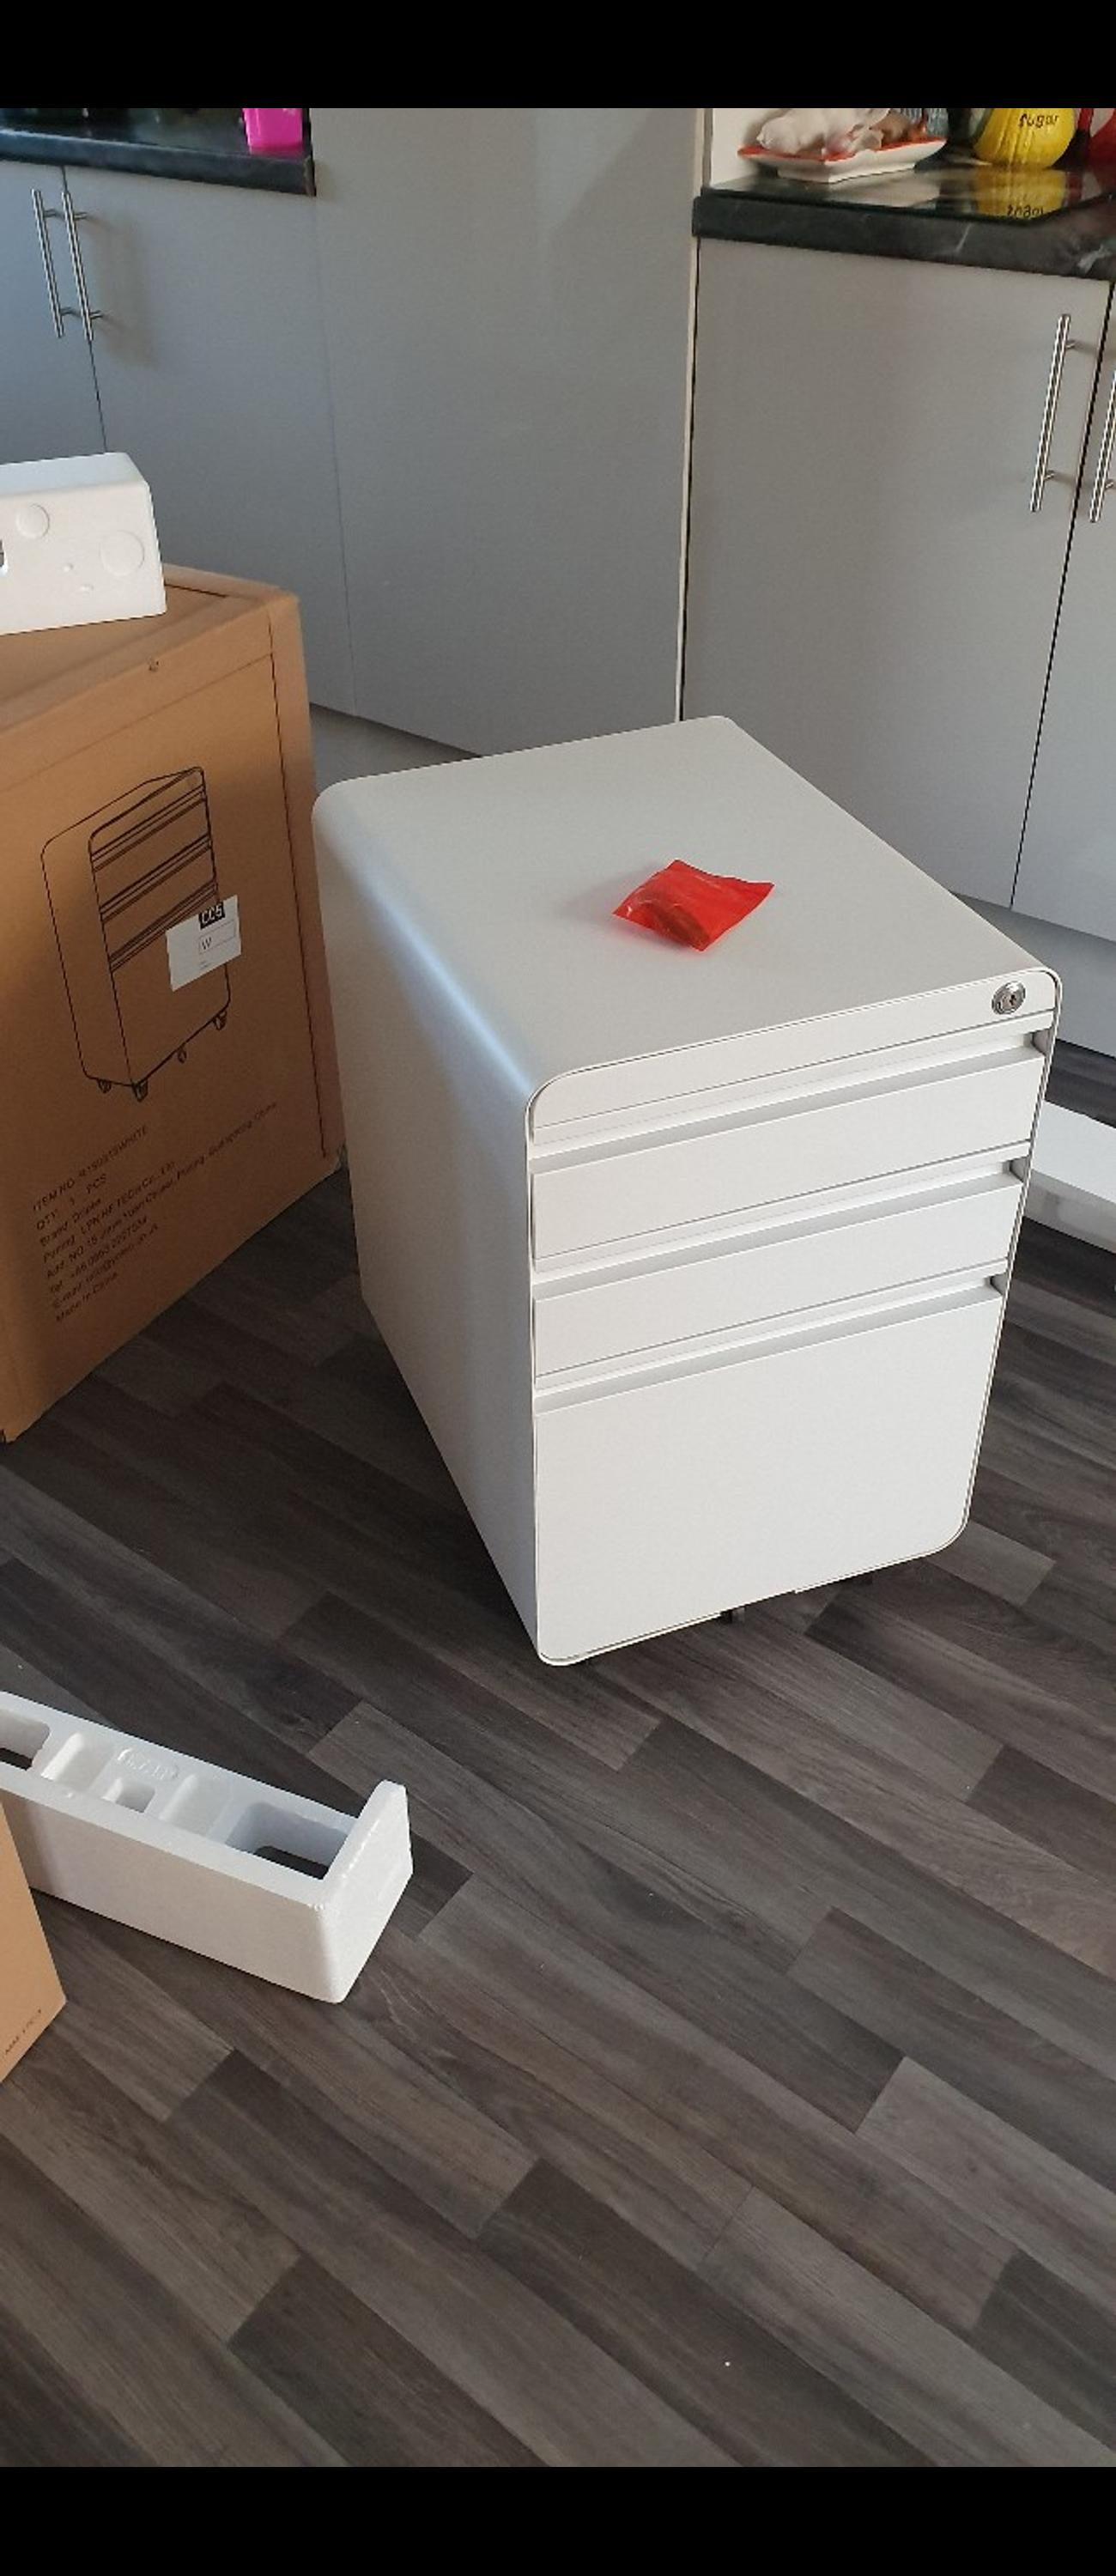 New, never use, still in box, been opened to take a picture. Dripex Fully Assembled 3-Drawer Mobile File Cabinet for A4 File, Lockable Metal Filling File Cabinet with Hanging File Frame and Anti-tilt Design Office Rolling Vertical File Cabinet can be delivered local, for extra £5